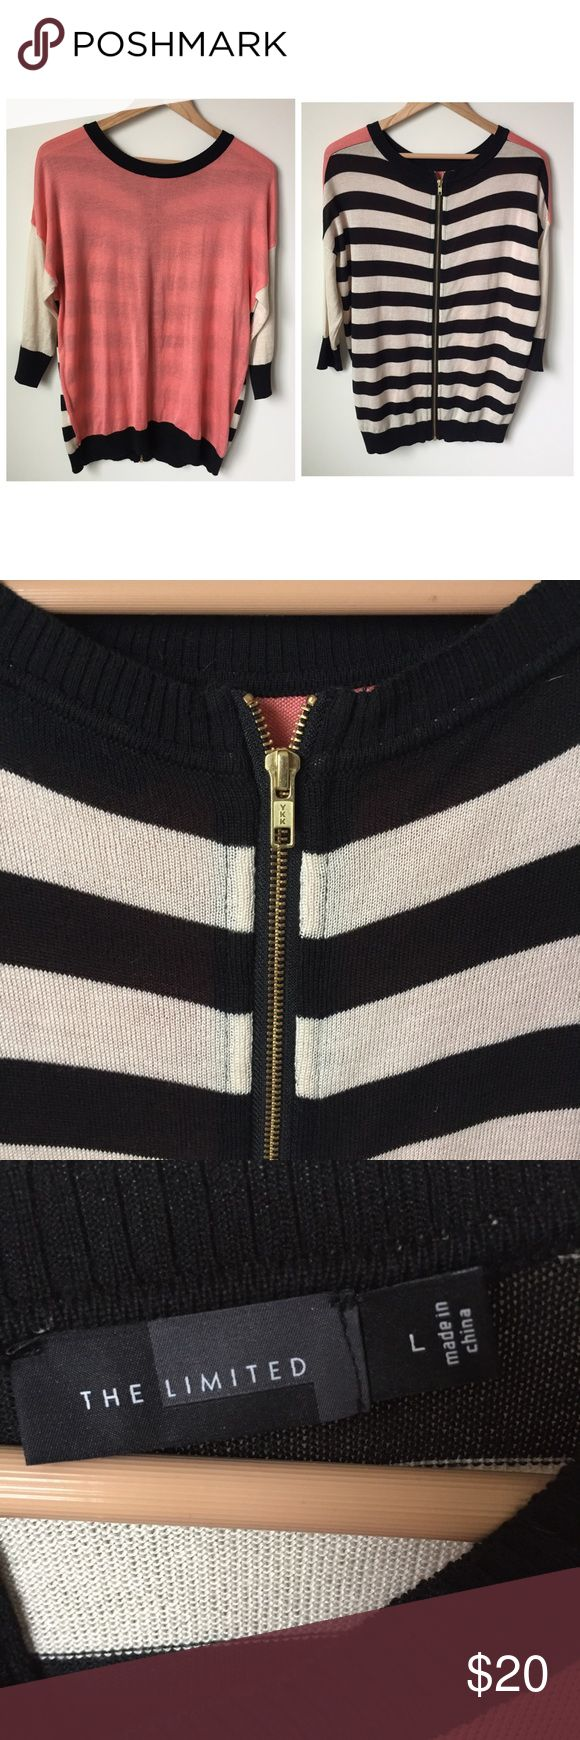 EXPRESS Oversized Slouchy Sweater w/ Exposed Zip Great Condition! No flaws. This sweater is super soft and and comfortable. But it can also be dressed up with leggings and heels. The exposed gold zipper on the back goes from top to bottom and really gives this piece unique detail! Express Tops